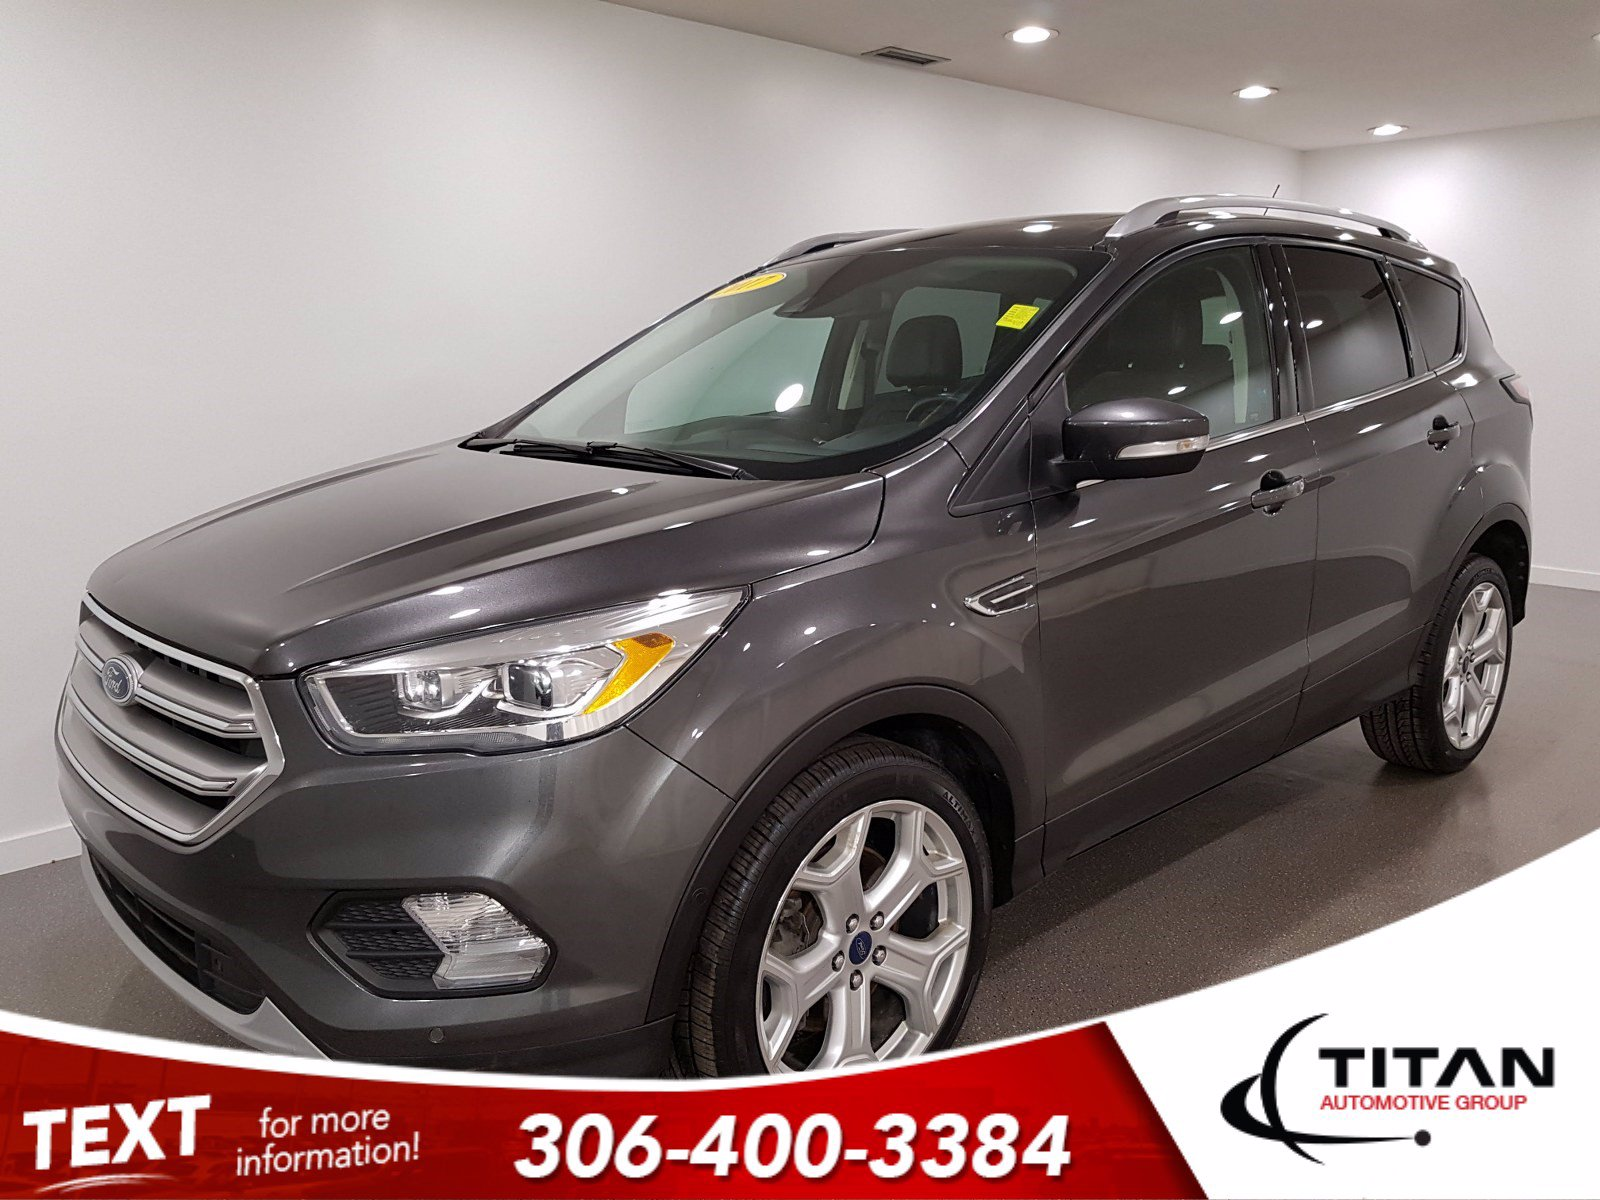 Pre-Owned 2017 Ford Escape Titanium EcoBoost | AWD | Leather | CAM | NAV | Remote Starter | Alloys